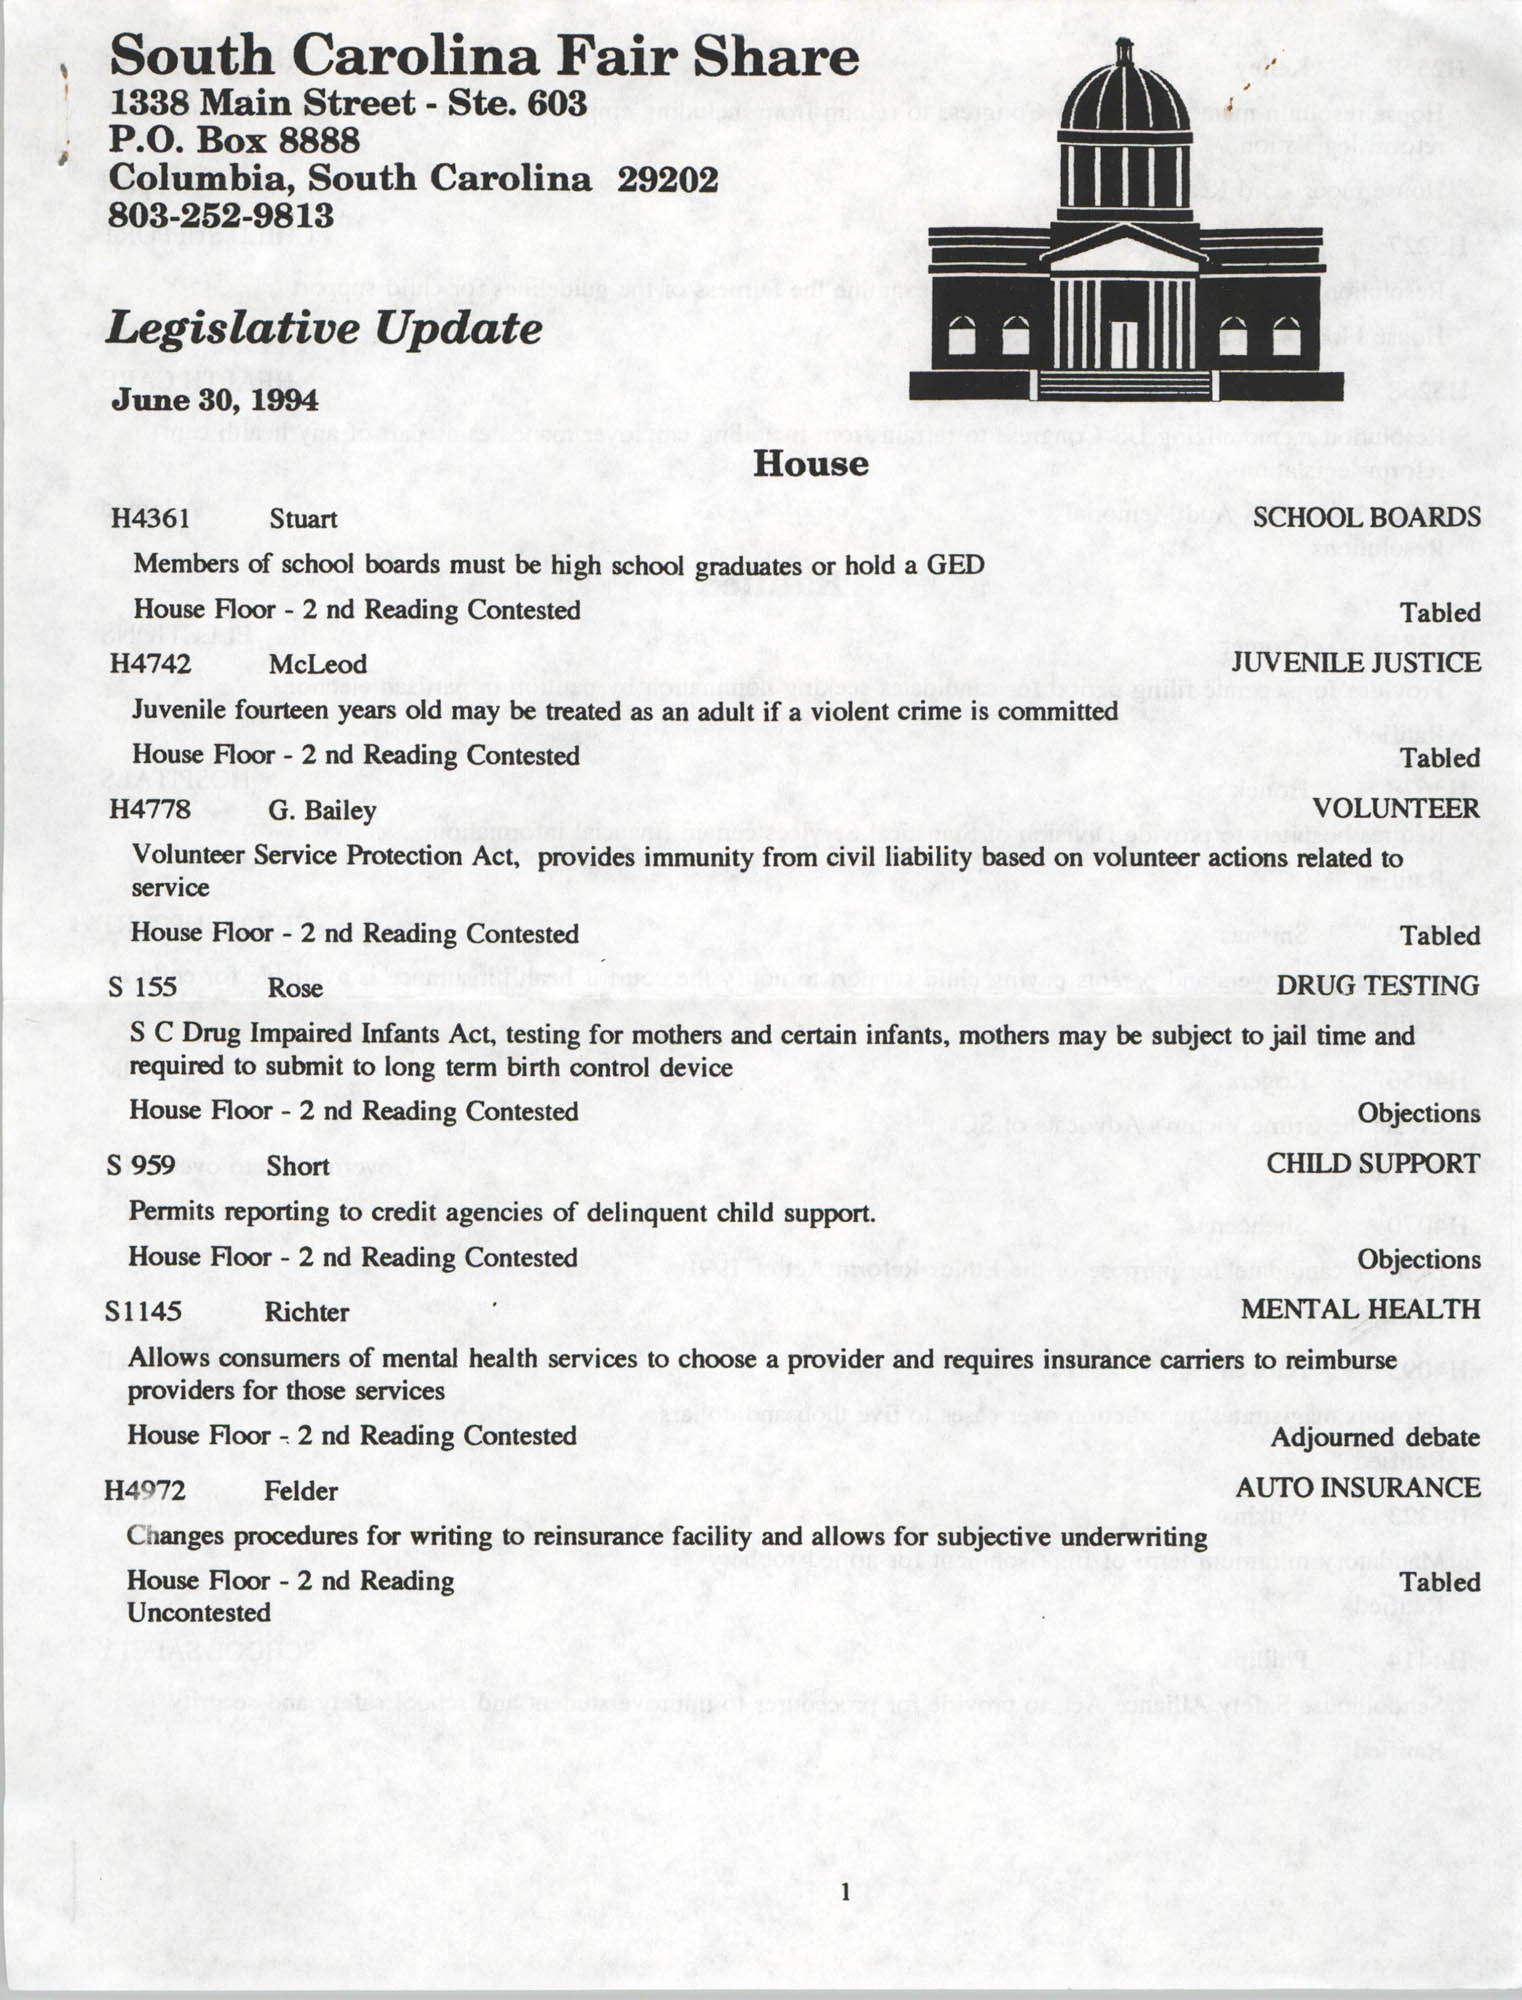 South Carolina Fair Share Legislative Update, June 30, 1994, Page 1